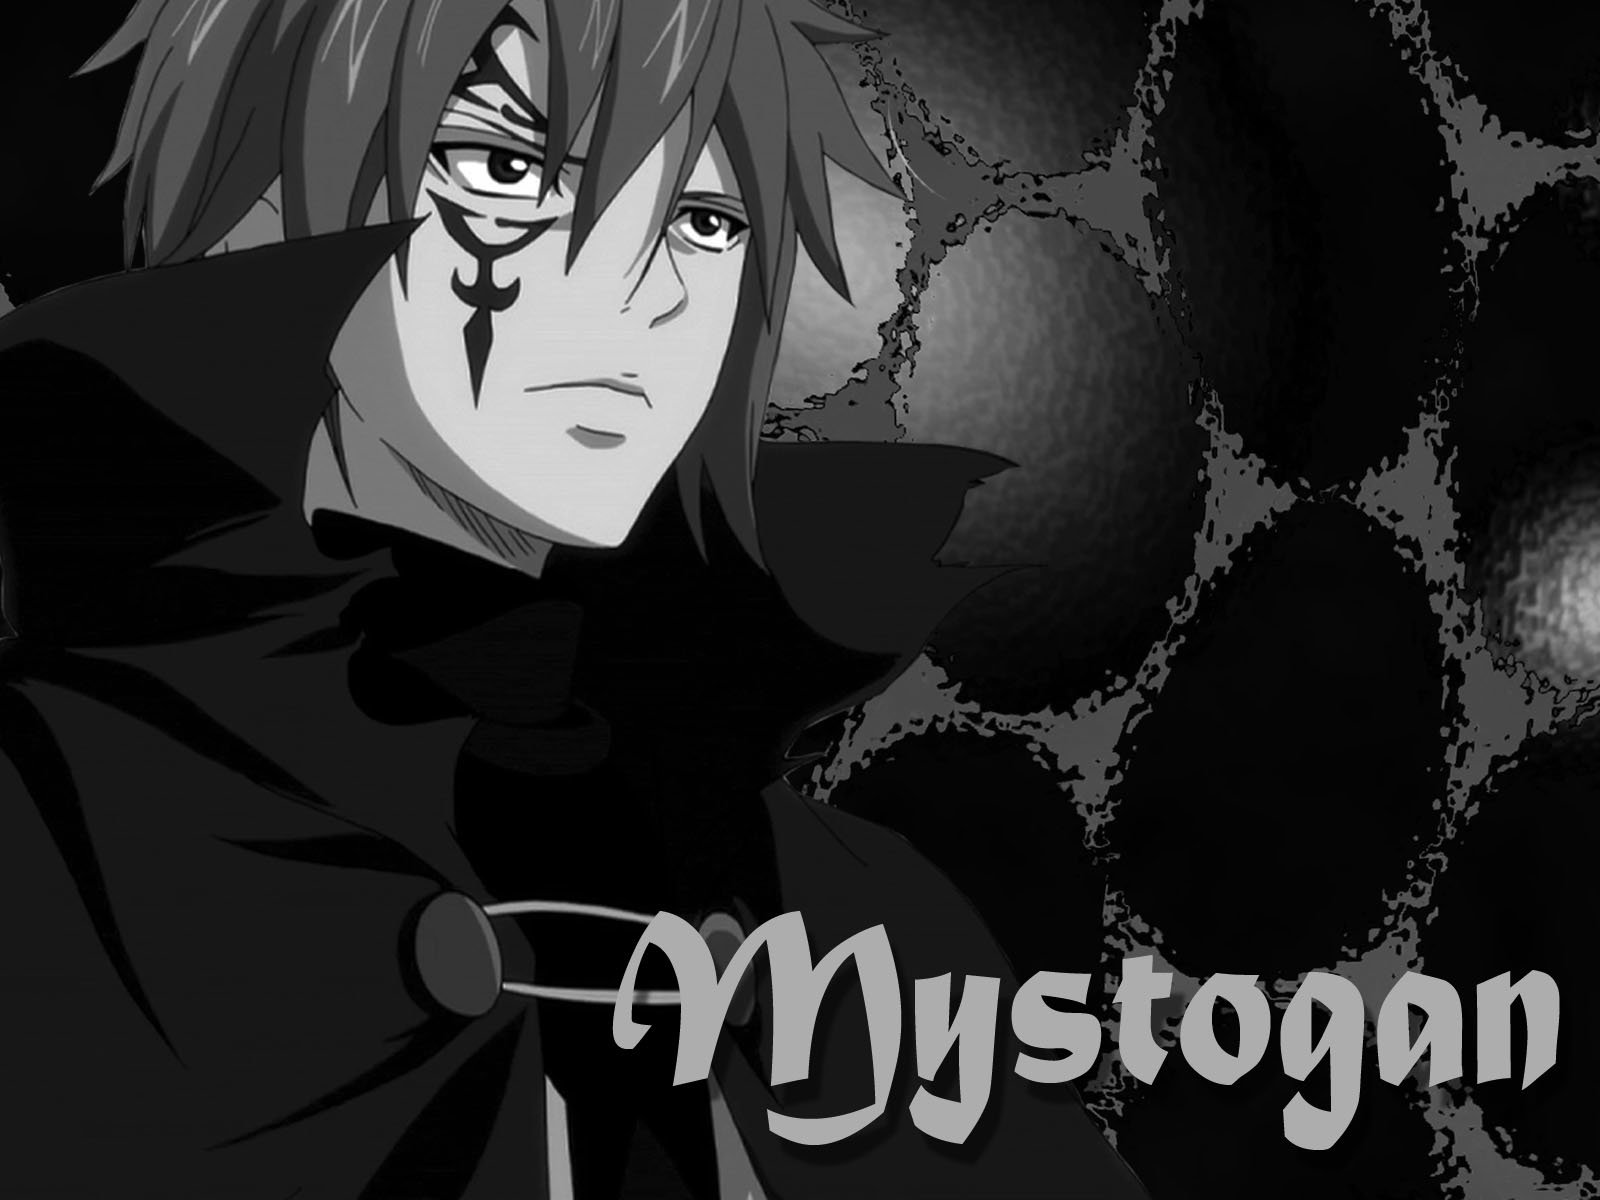 High resolution Mystogan (Fairy Tail) hd 1600x1200 background ID:40951 for computer